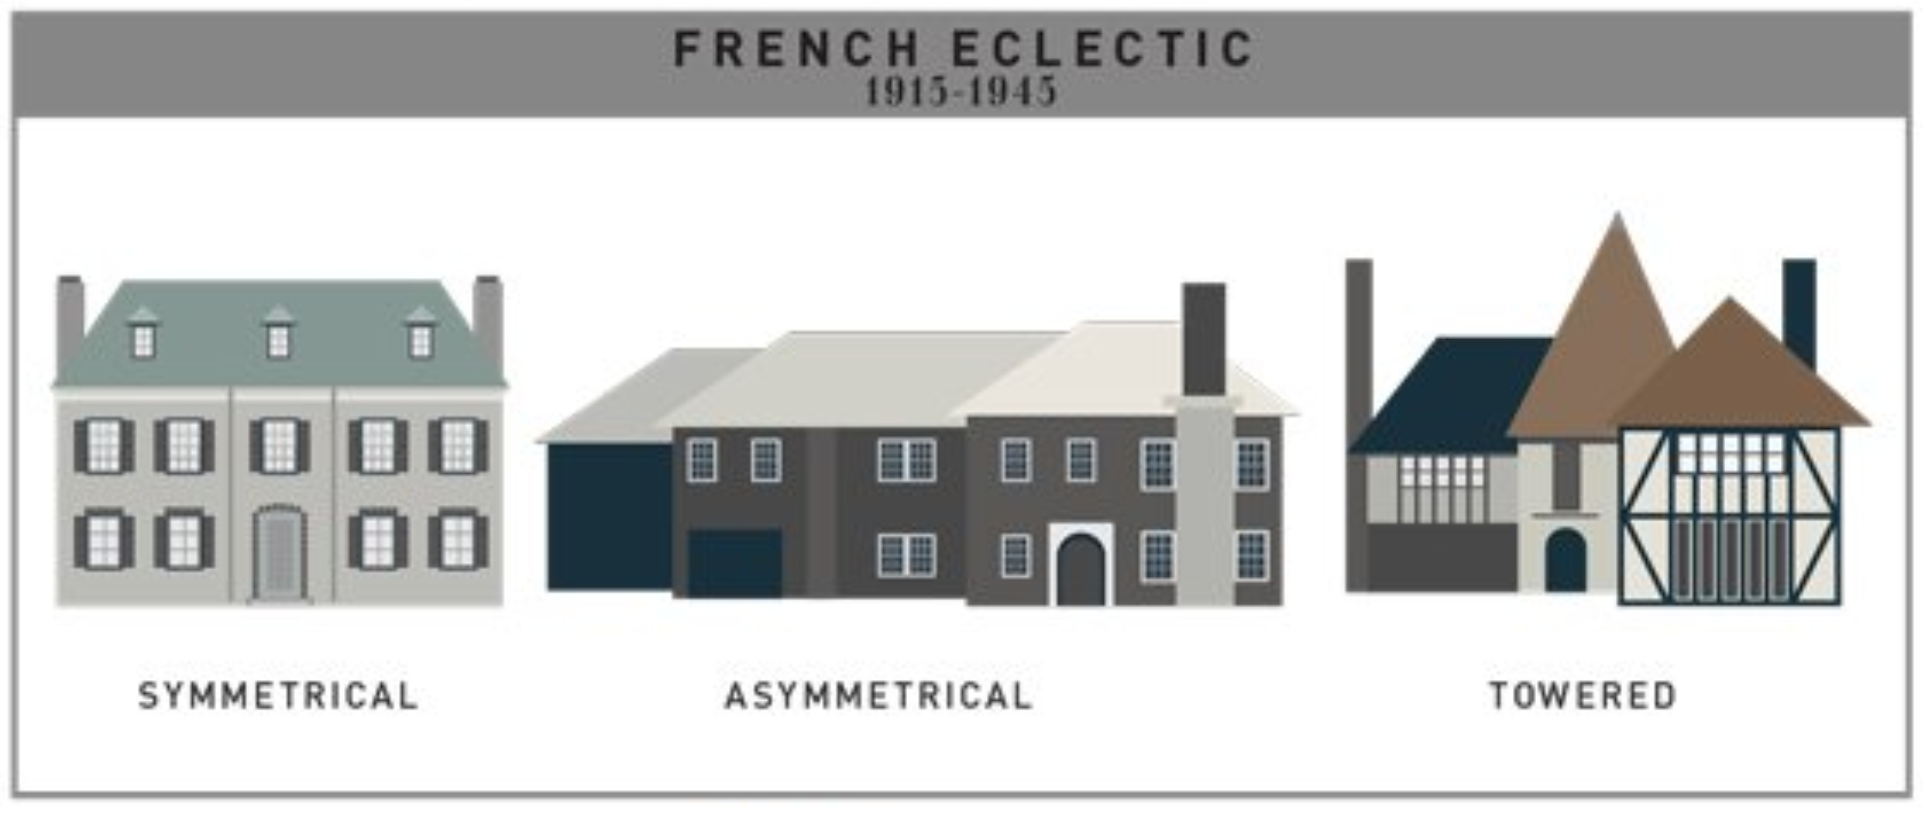 Top American House Styles & Designs (1800 to 2019) - meqasa blog on neoclassical home plans, wide house plans, 1920 sears-roebuck house plans, georgian style home plans, rectangular house plans, square house plans, similar house plans, complete house plans, light house plans, 4 bedroom house plans, twisted house plans, country house plans, simple house plans, colonial house plans, chateau house plans, modern house plans, color house plans, southern house plans, straight house plans, angular house plans,